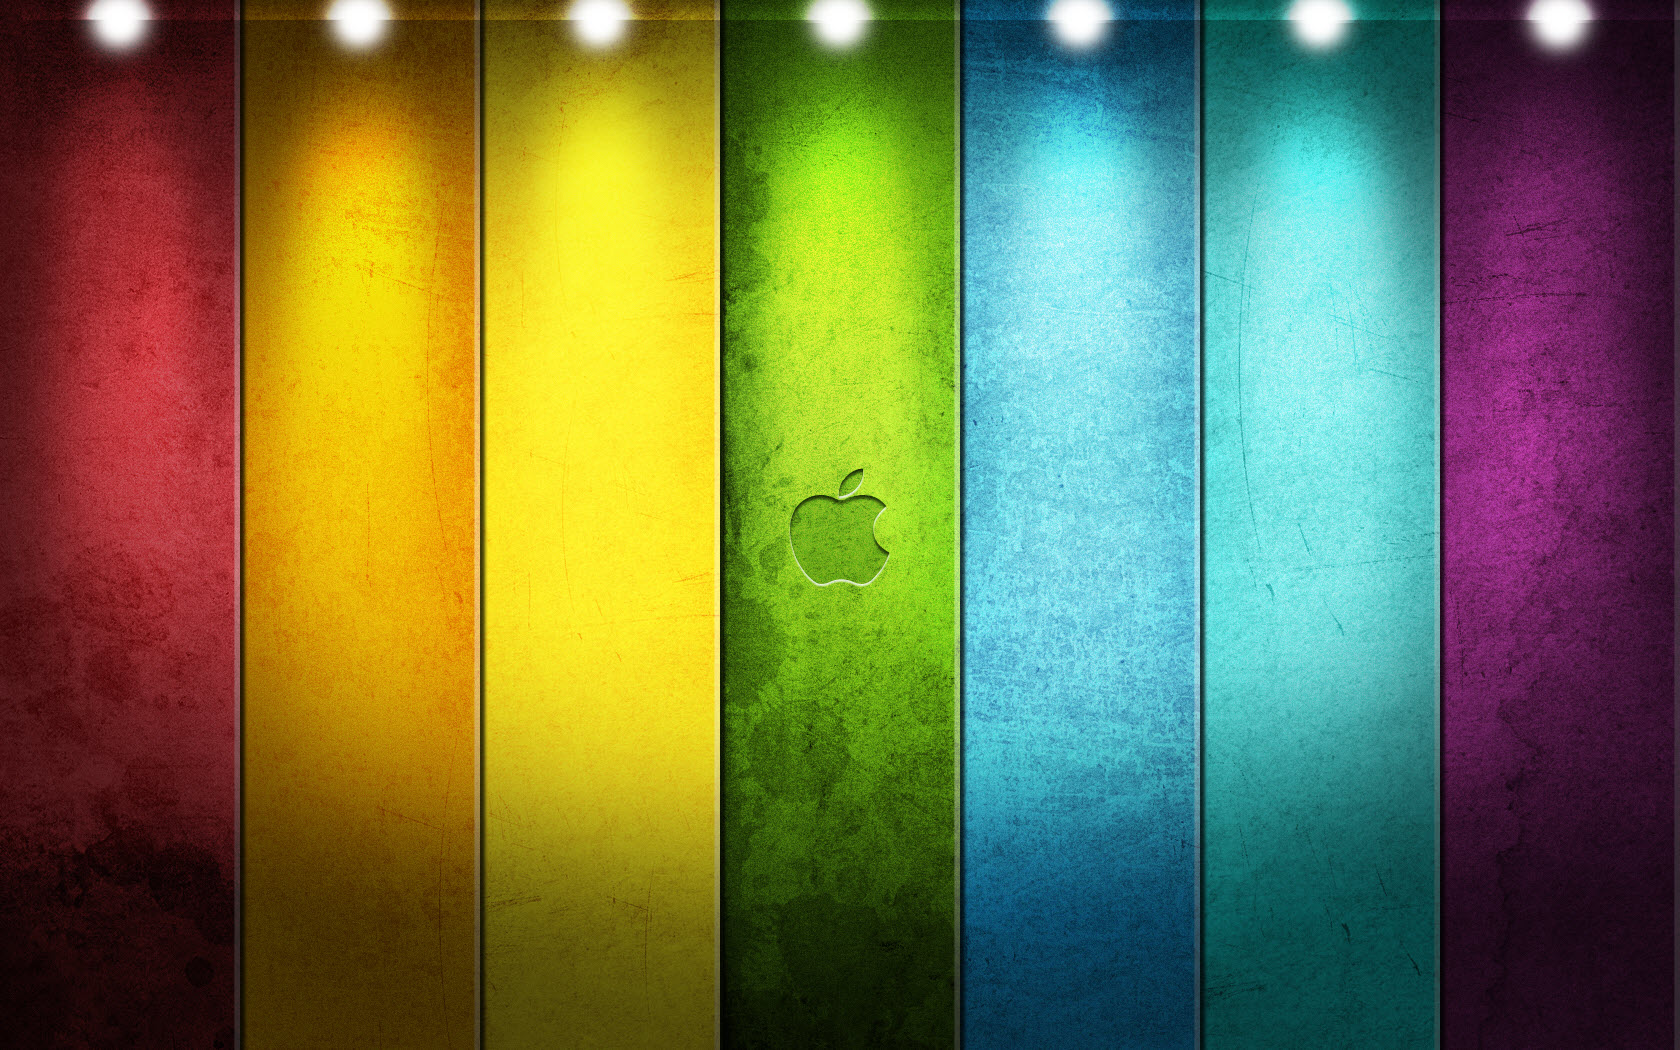 Apple Focus Colors 151.95 Kb